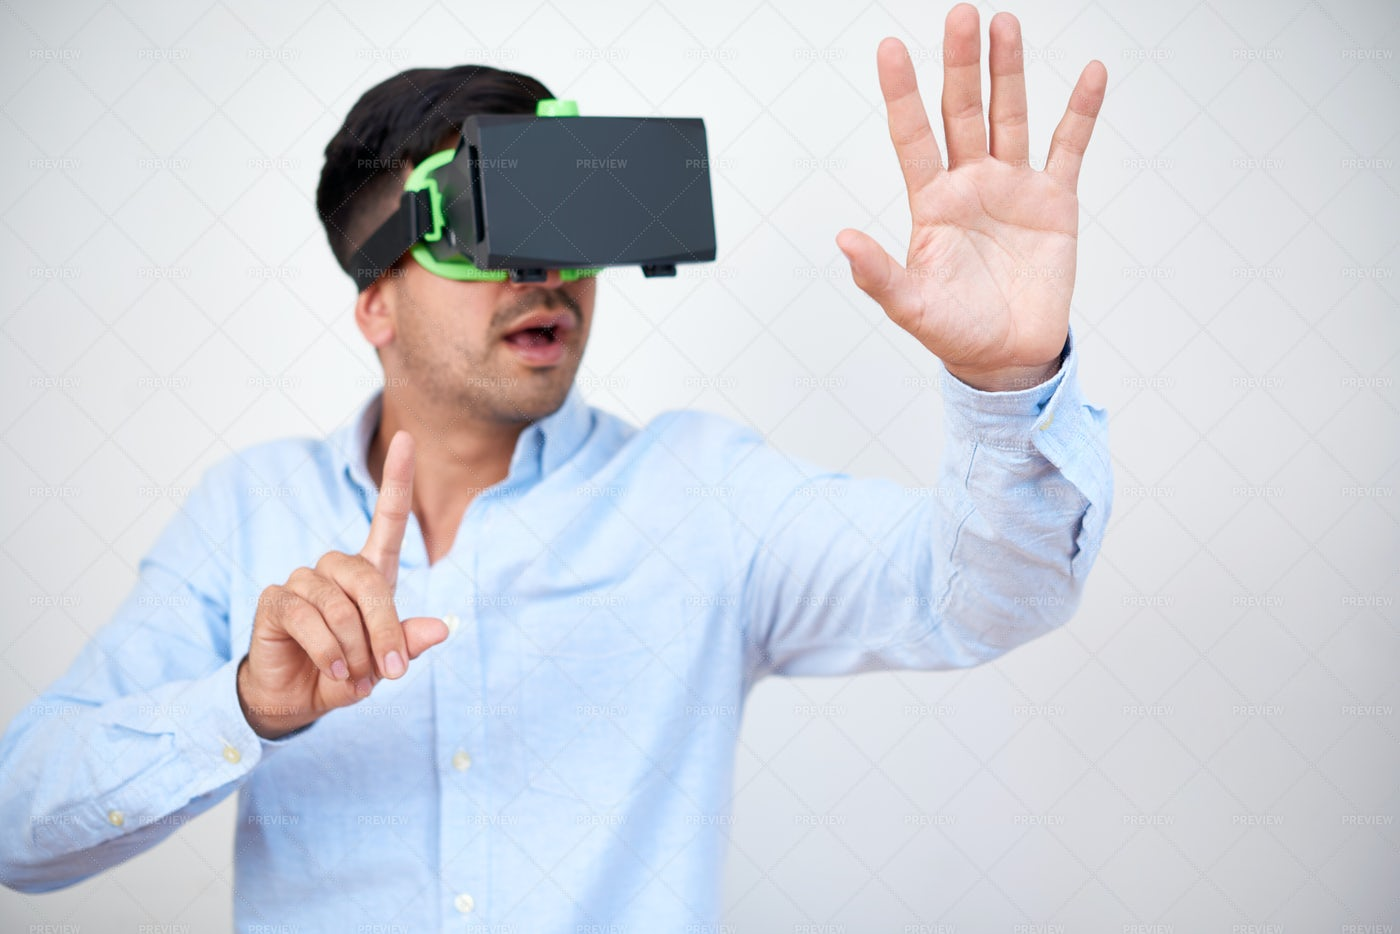 Excited Businessman In VR Headset: Stock Photos